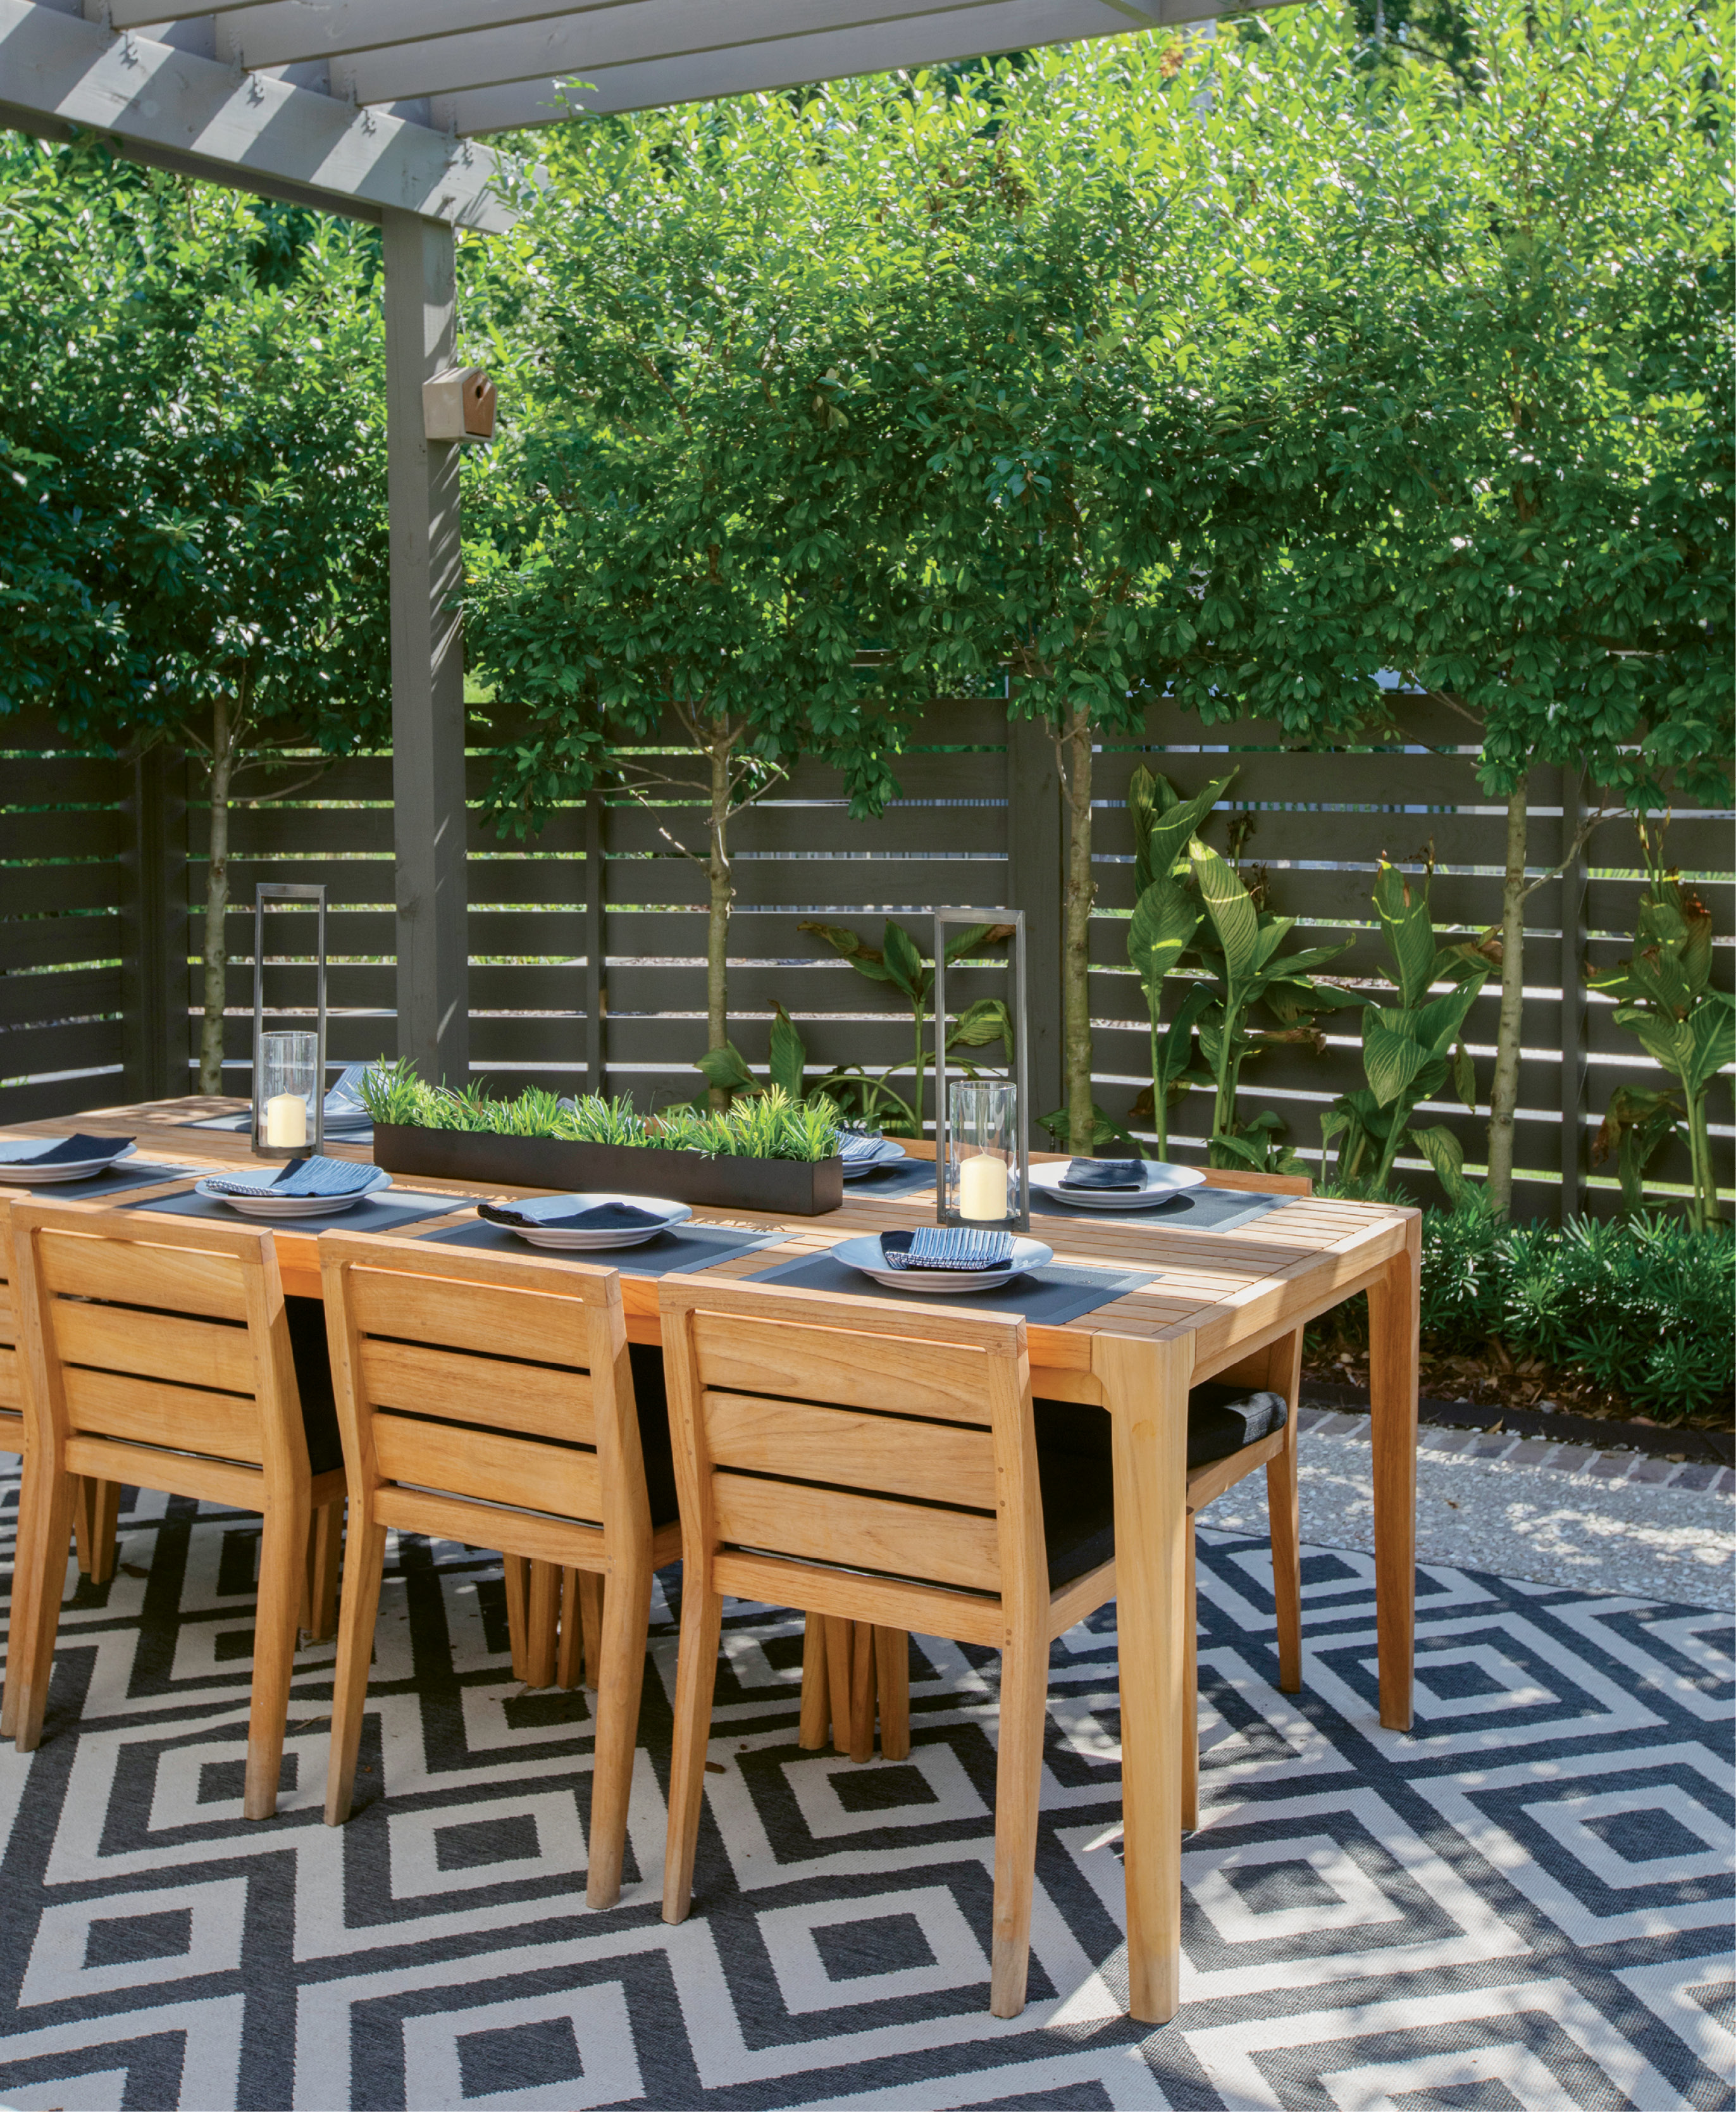 Limbed holly bushes soften a horizontal wood-slat fence, providing privacy as well as filtered light for the Thomae family's alfresco dining room.